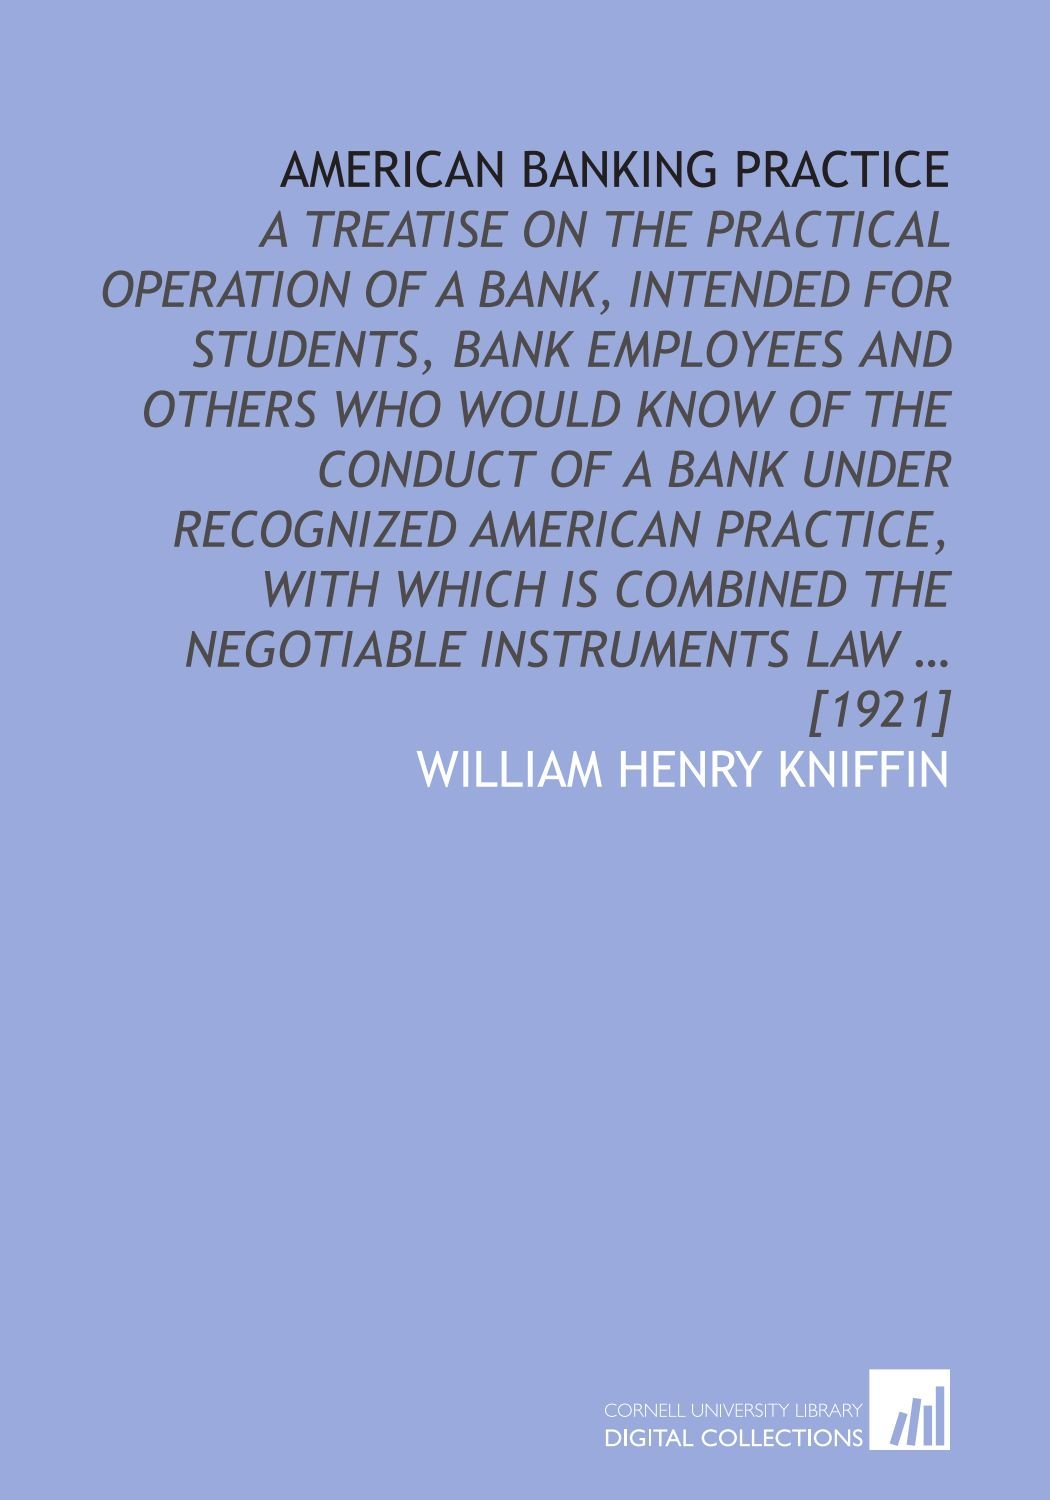 American banking practice: a treatise on the practical operation of a bank, intended for students, bank employees and others who would know of the ... the negotiable instruments law … [1921] pdf